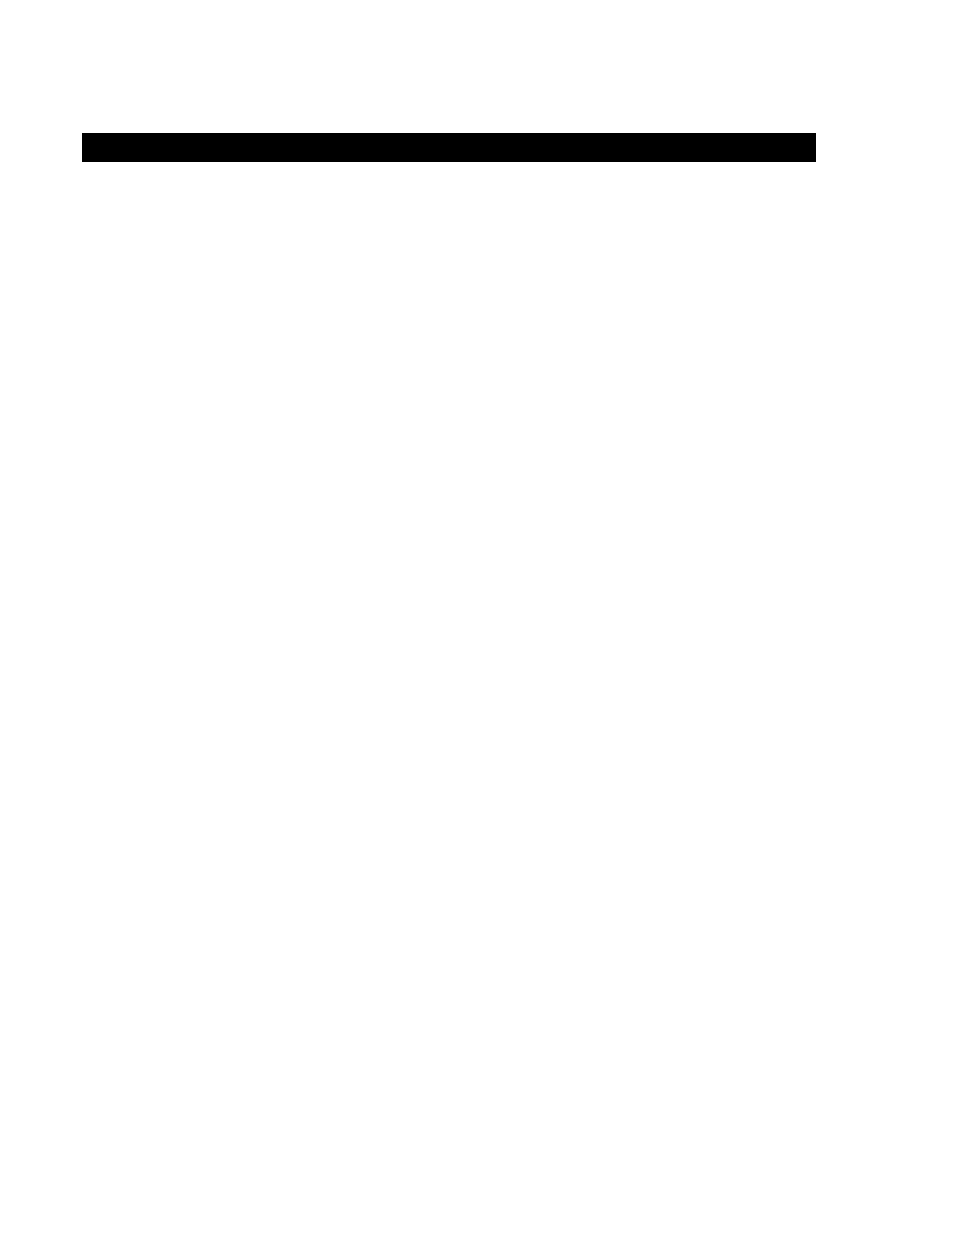 chapter 1 - description of the dialstat, dialer | microtel dialstat (with  fault indicators) user manual | page 6 / 32